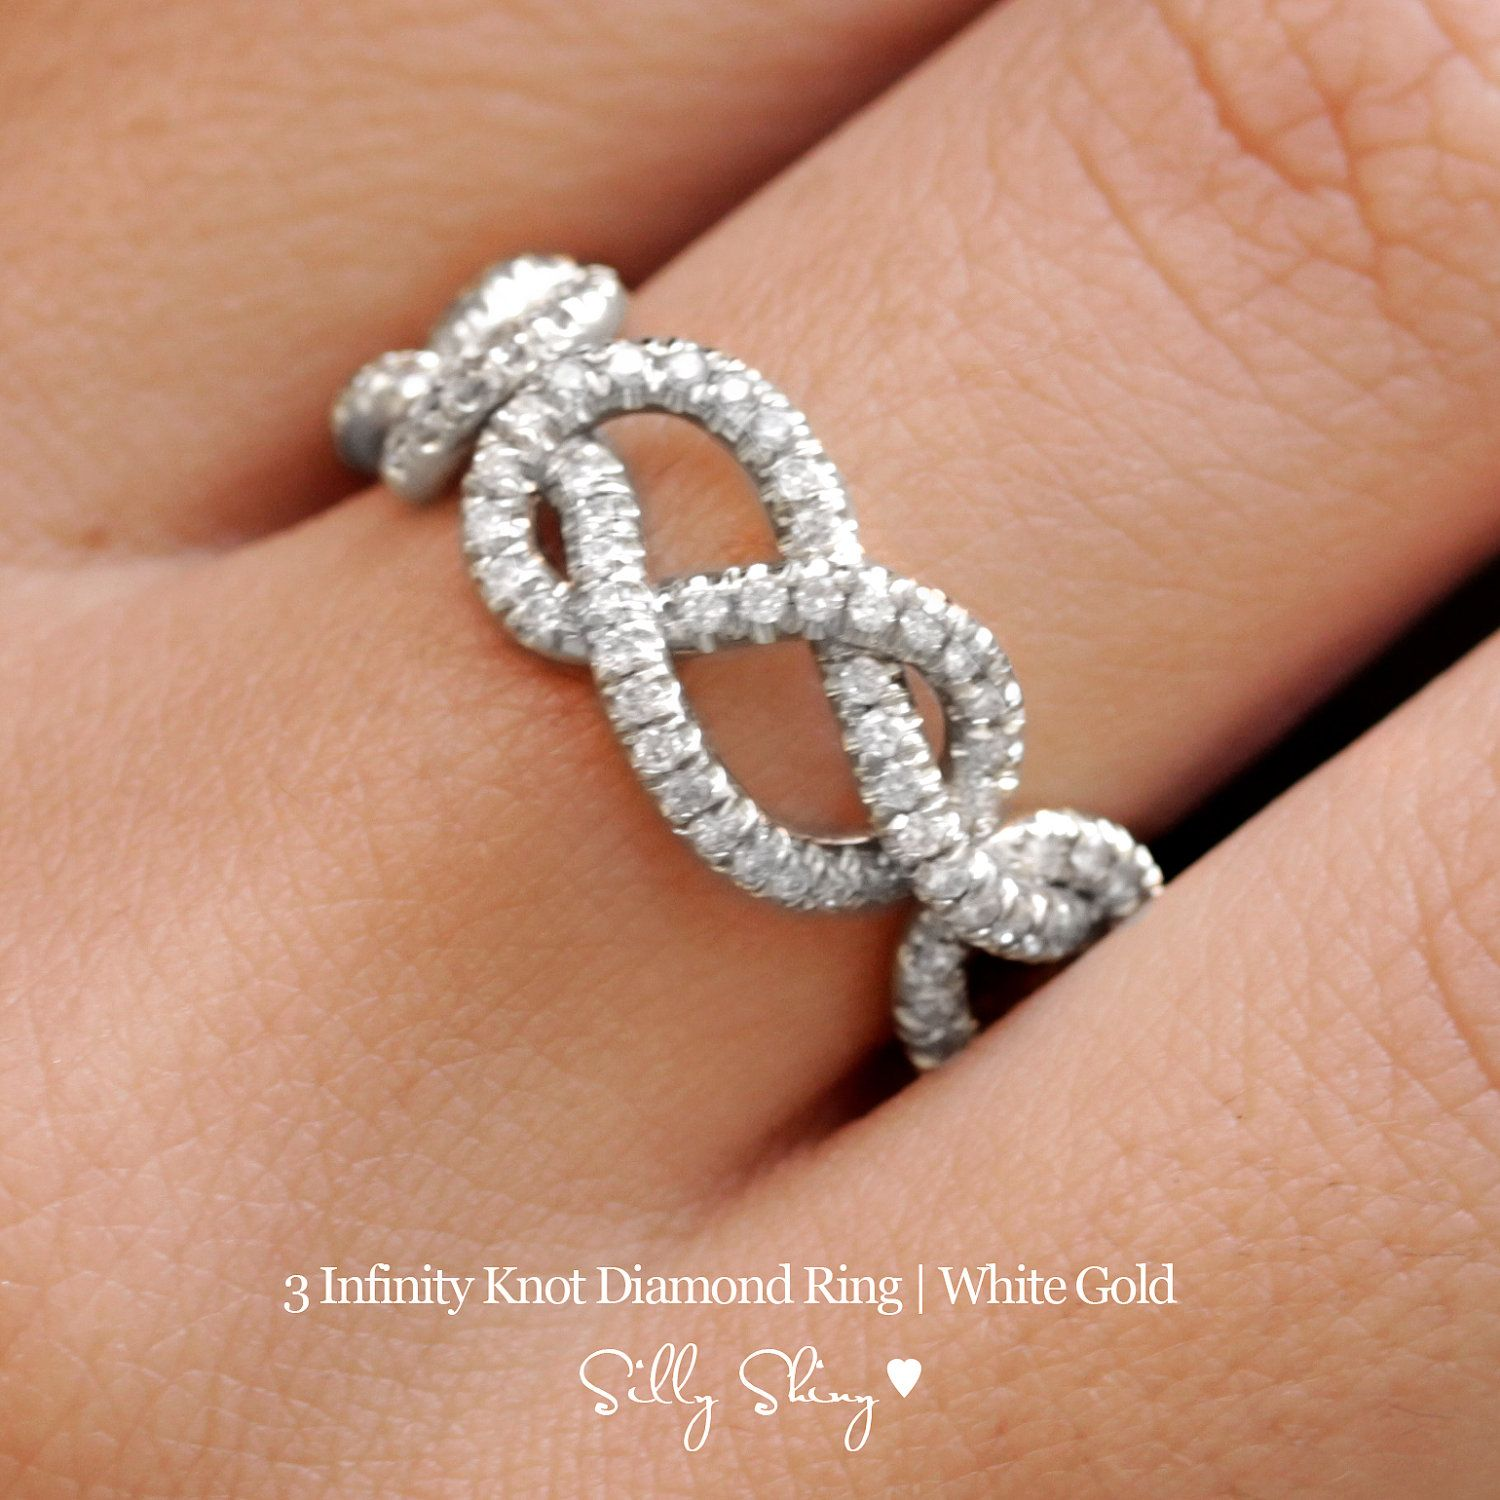 knot online diamond engagement jewelry ring and wedding your seattle own pin bellevue joseph edgeless modern design pav